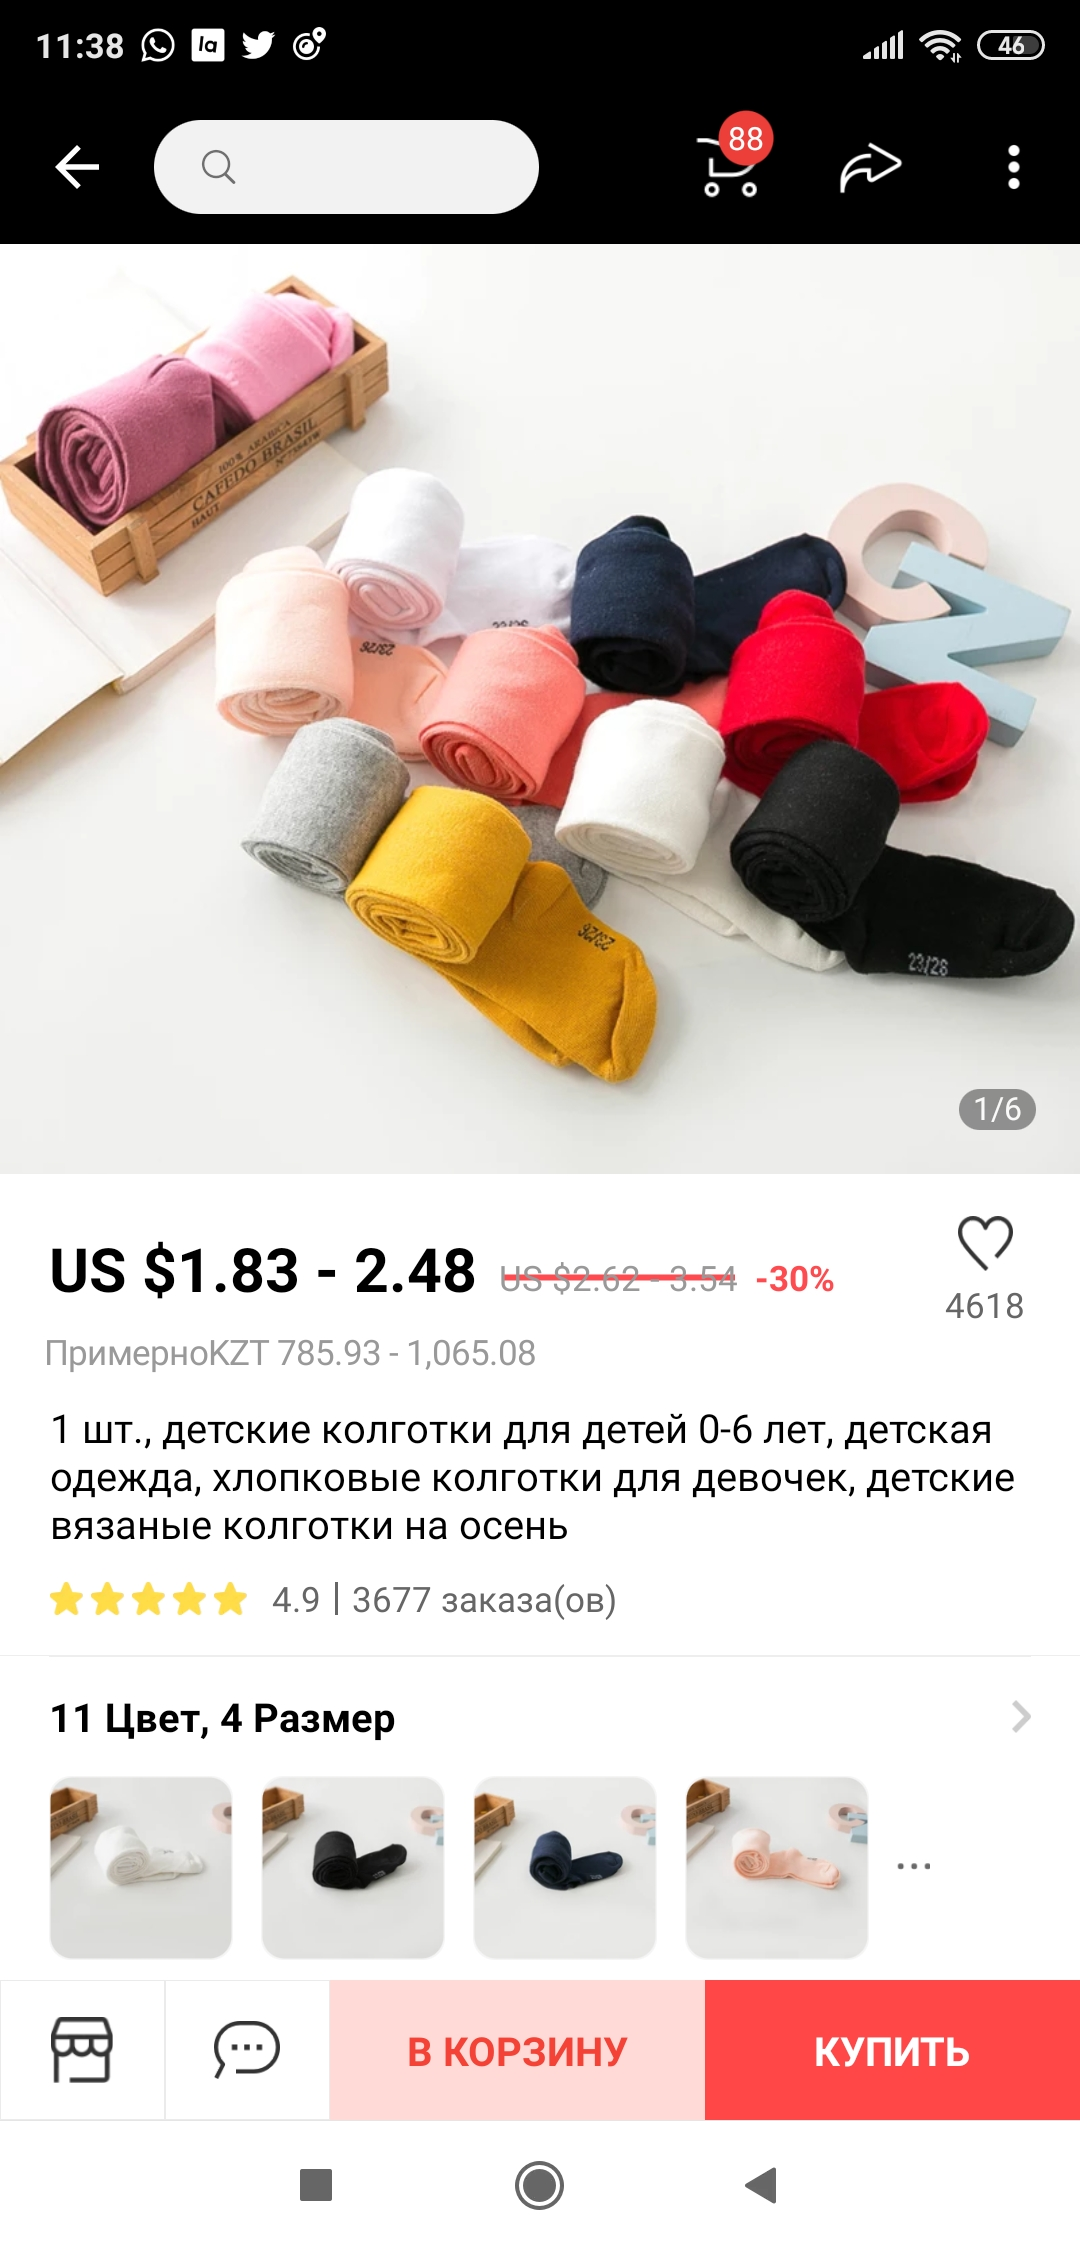 <p>Hello.</p>